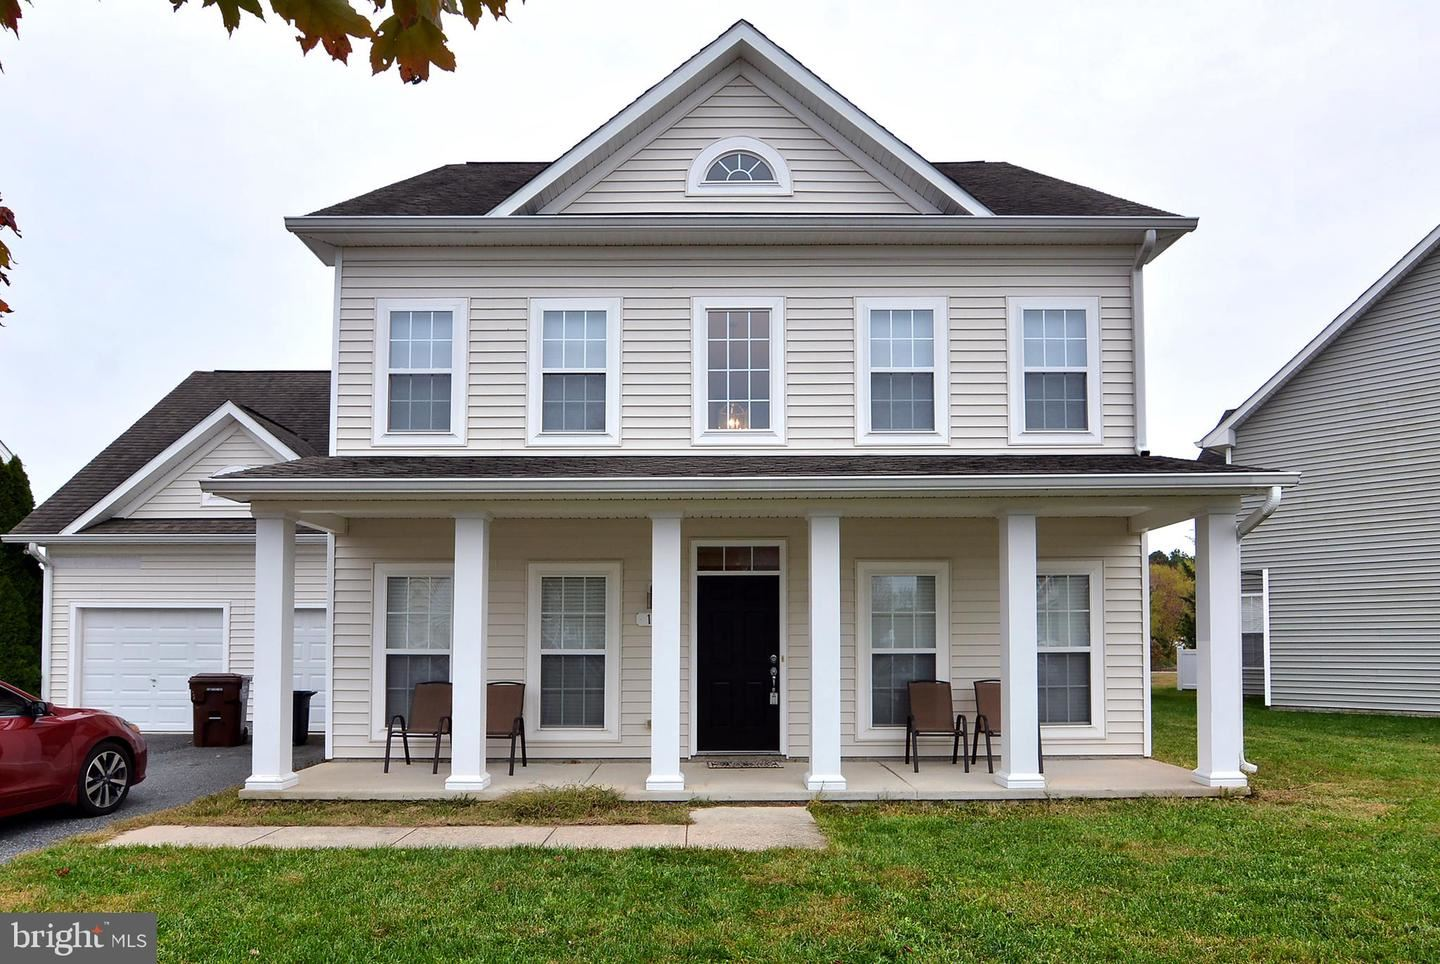 Photo for 121 TEAL LN, CAMBRIDGE, MD 21613 (MLS # MDDO124496)